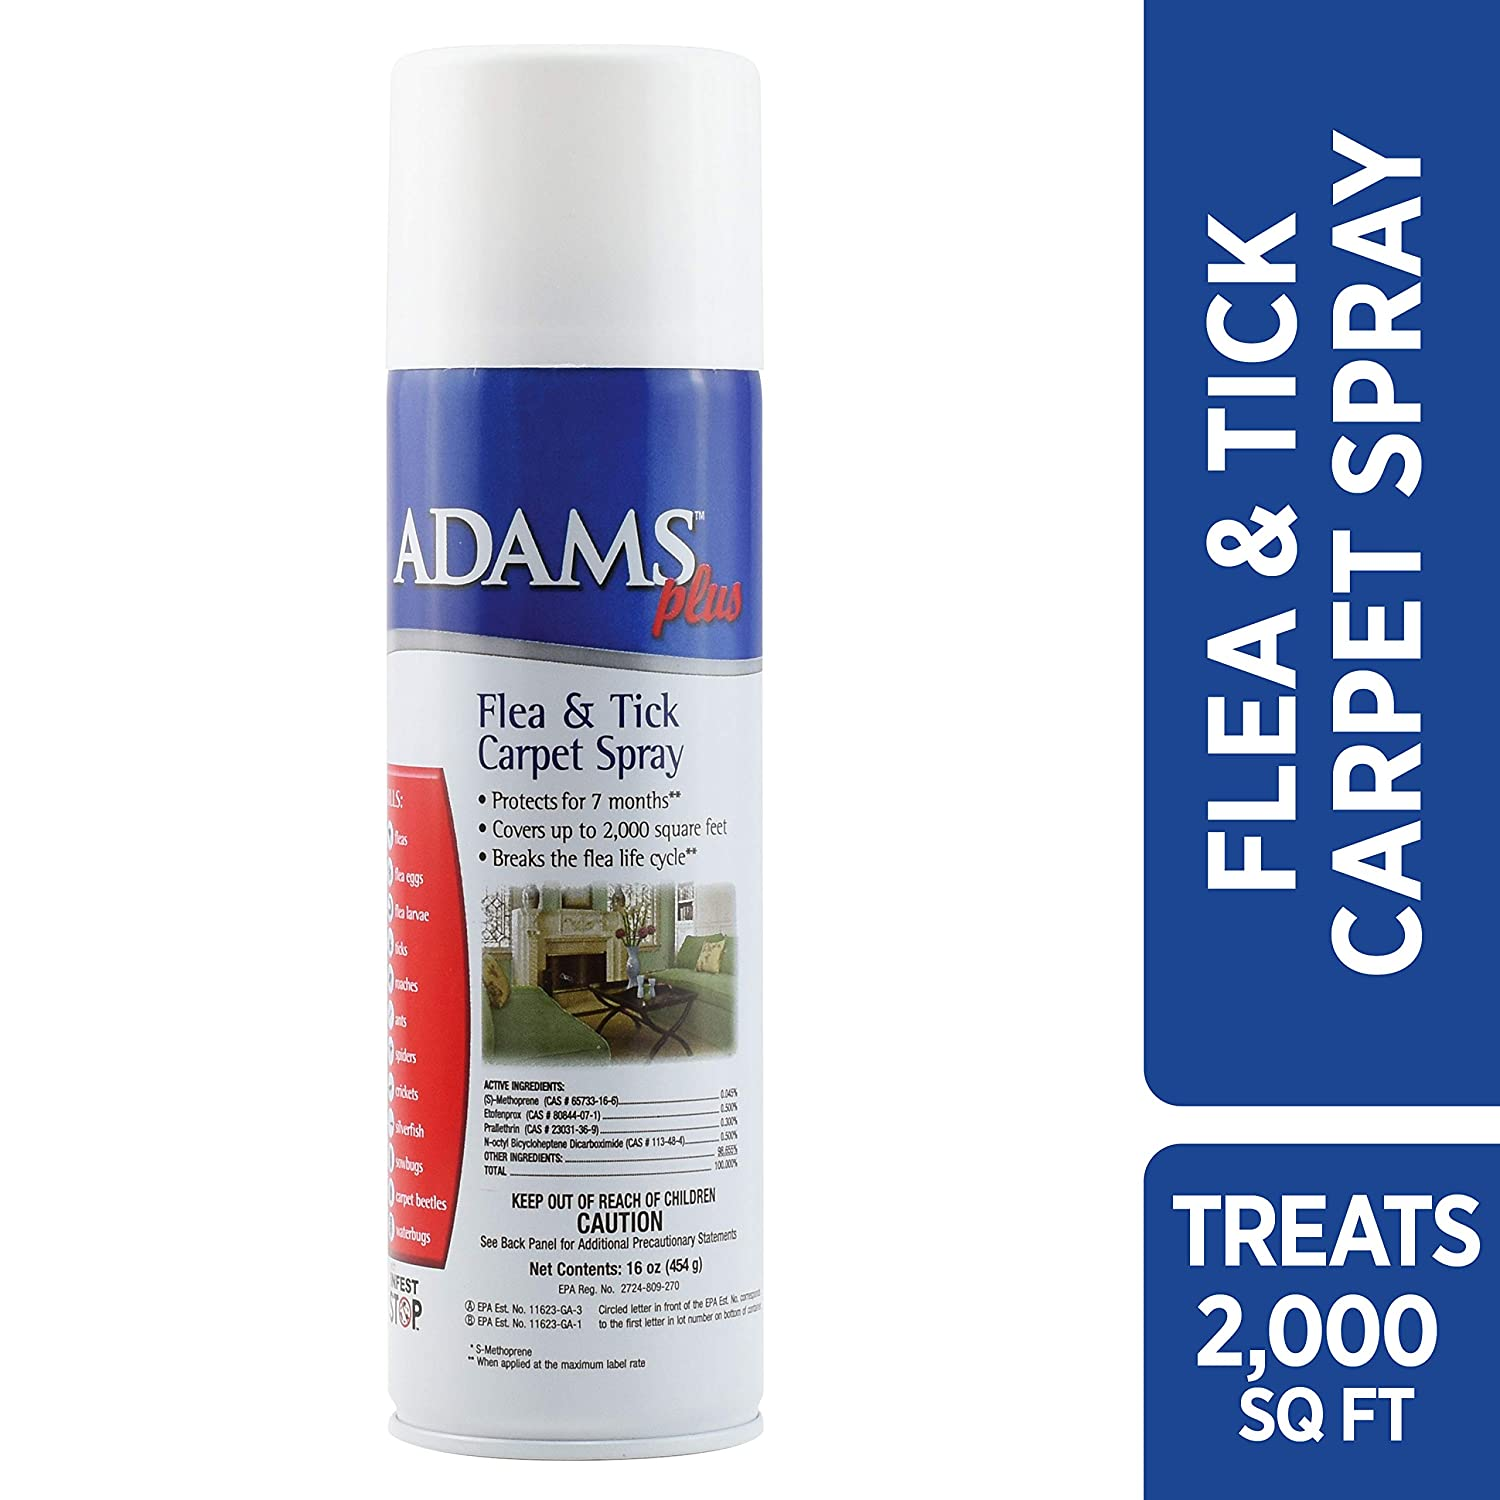 Adams Plus Flea & Tick Carpet Spray